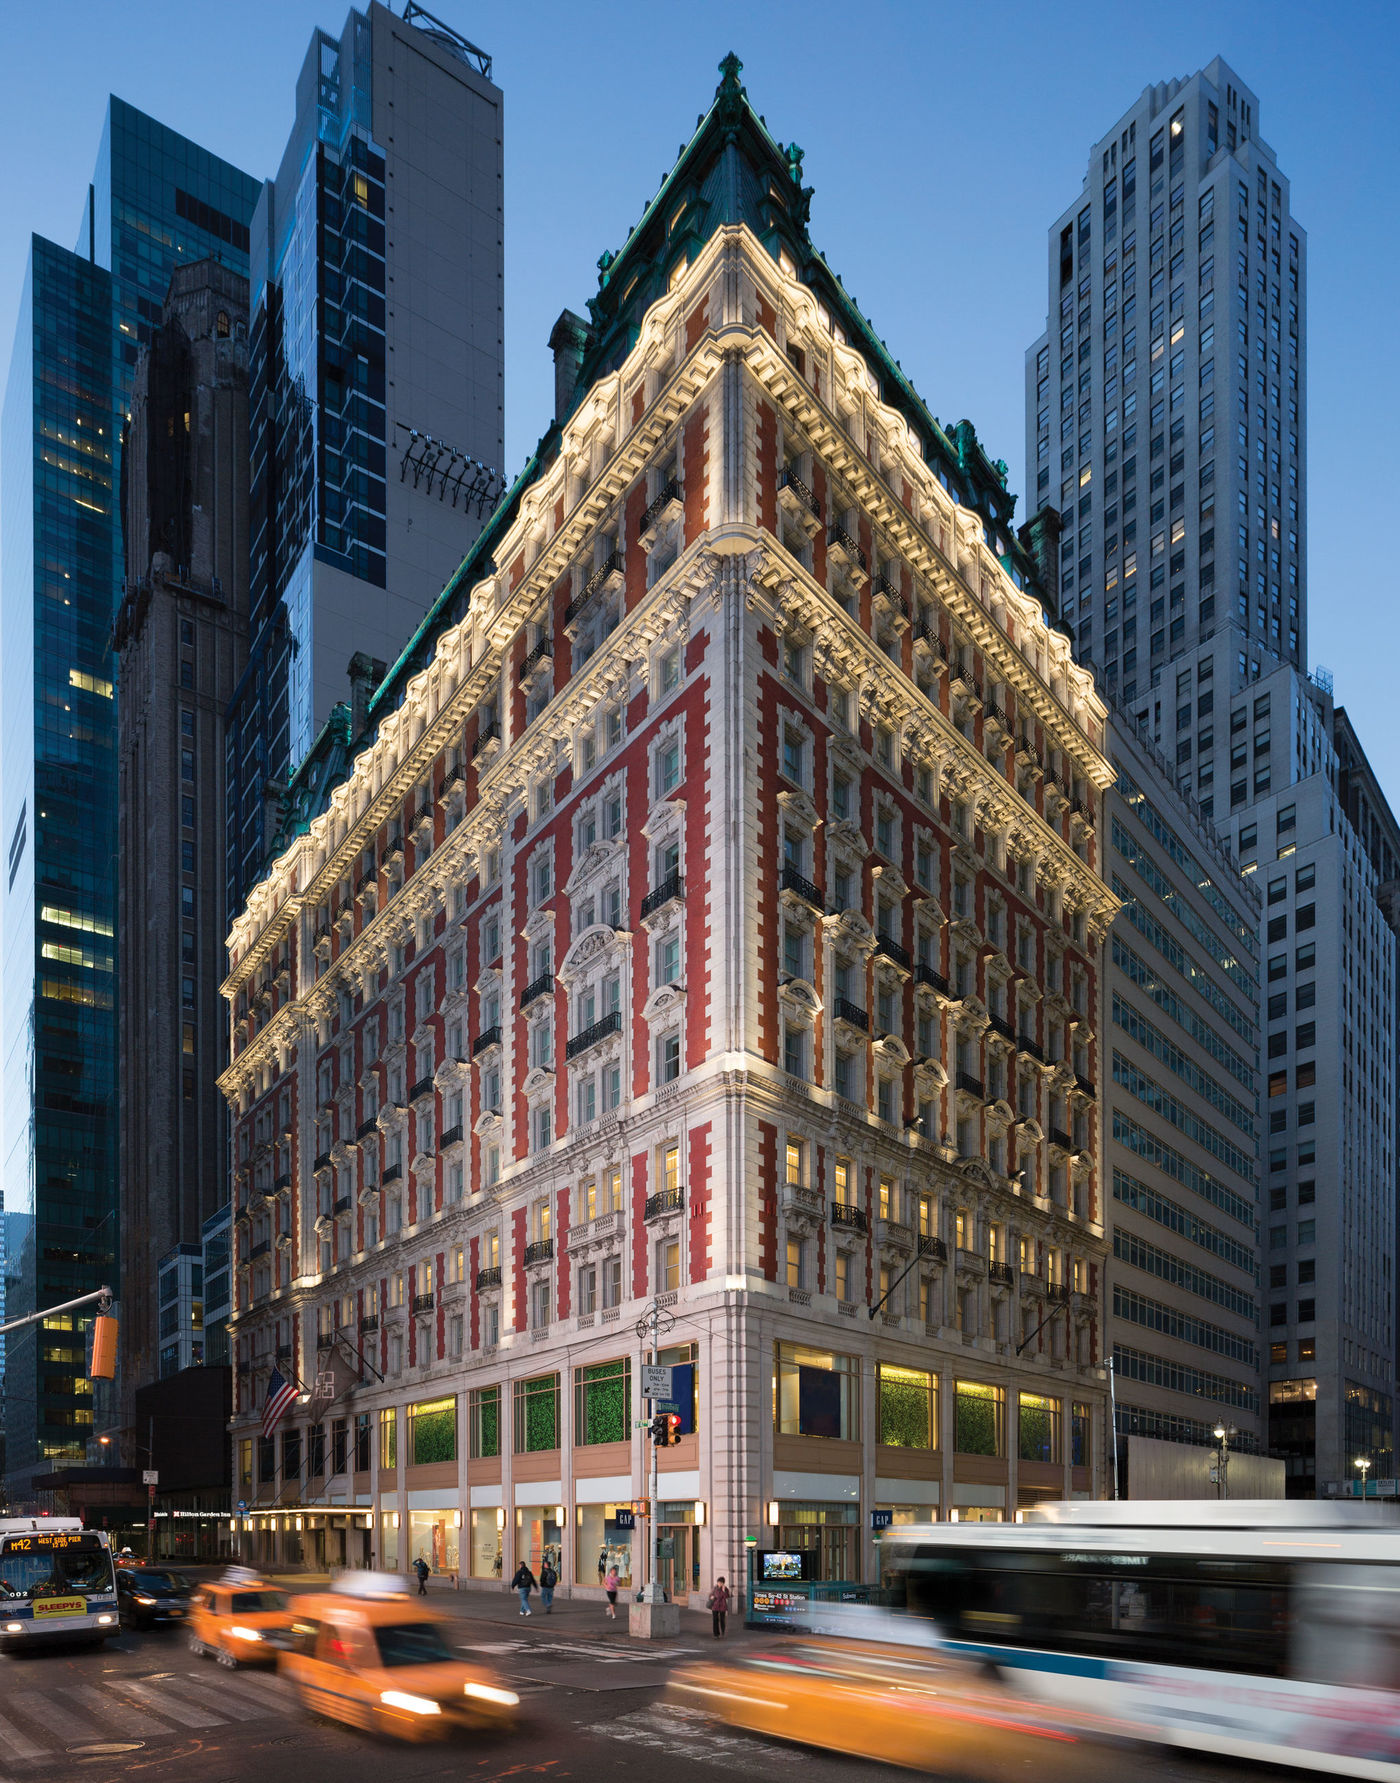 The Knickerbocker Hotel axonometric exterior view